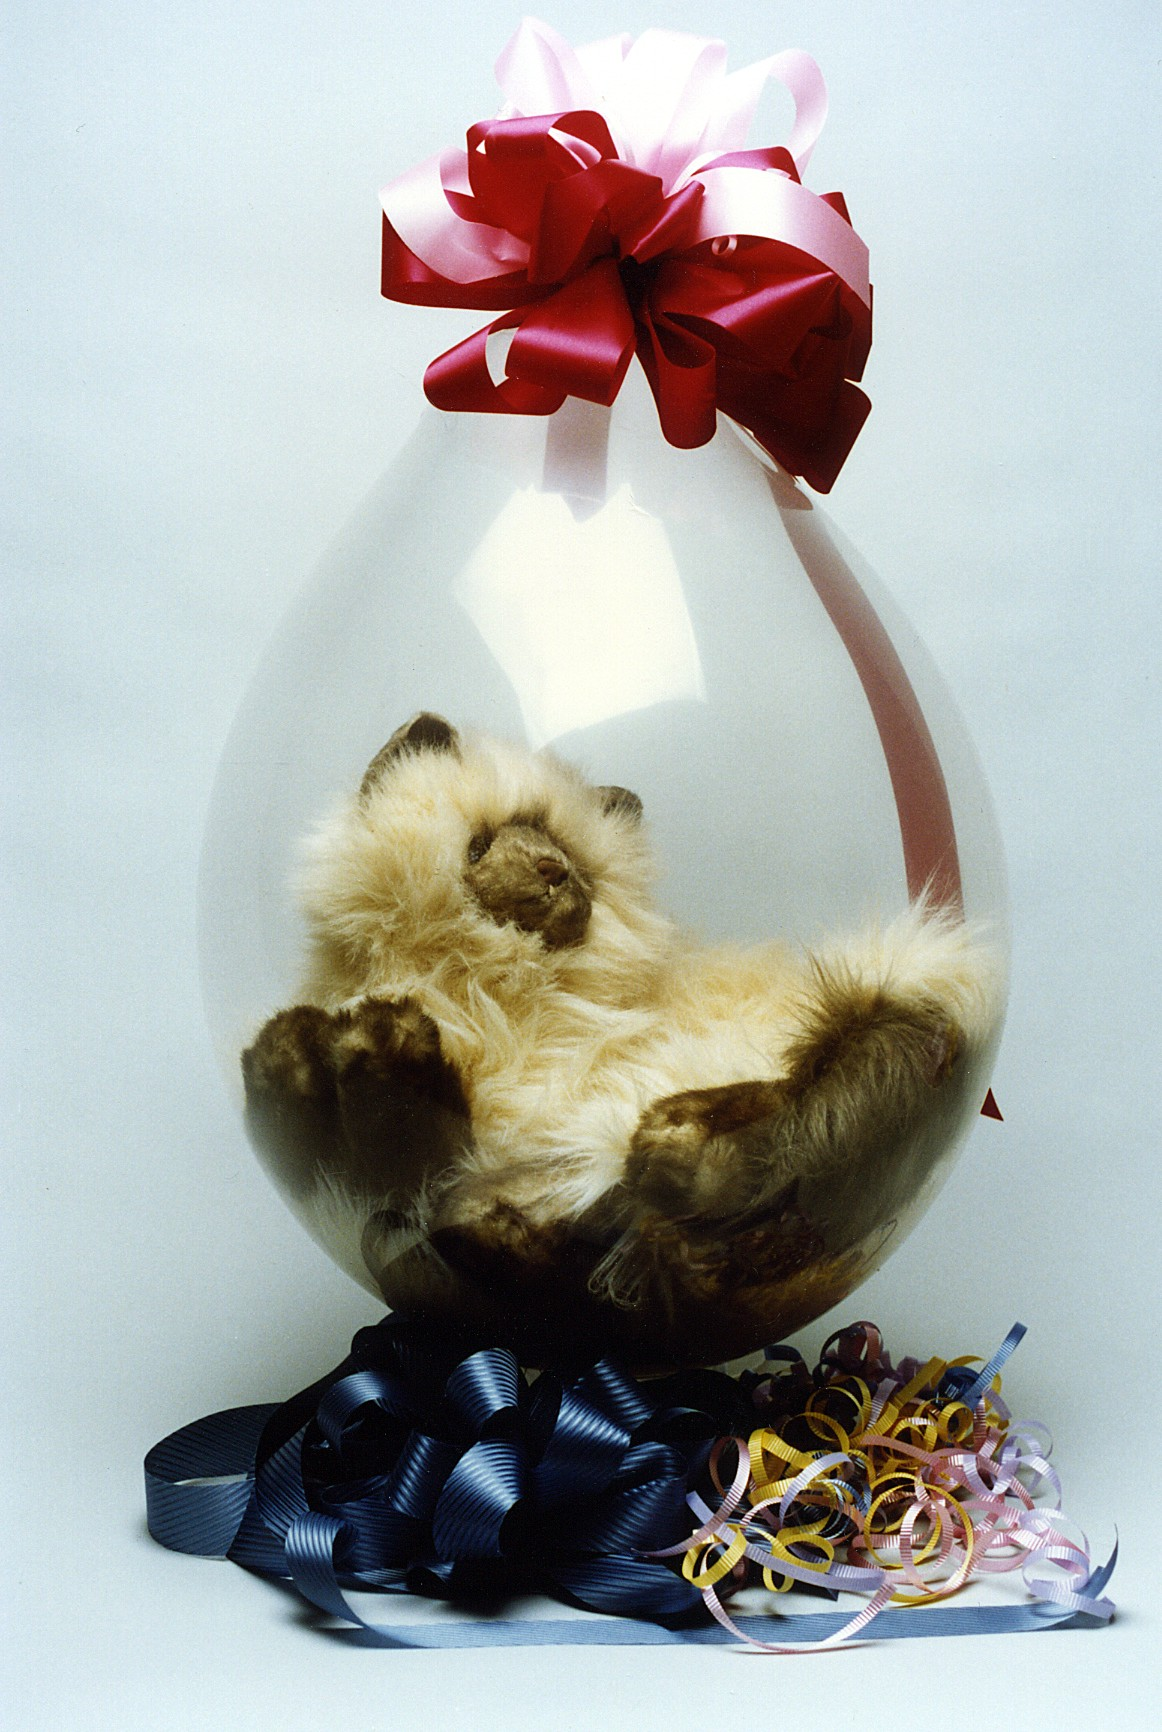 18-inch-qualate-stuffing-balloon-cat.jpg